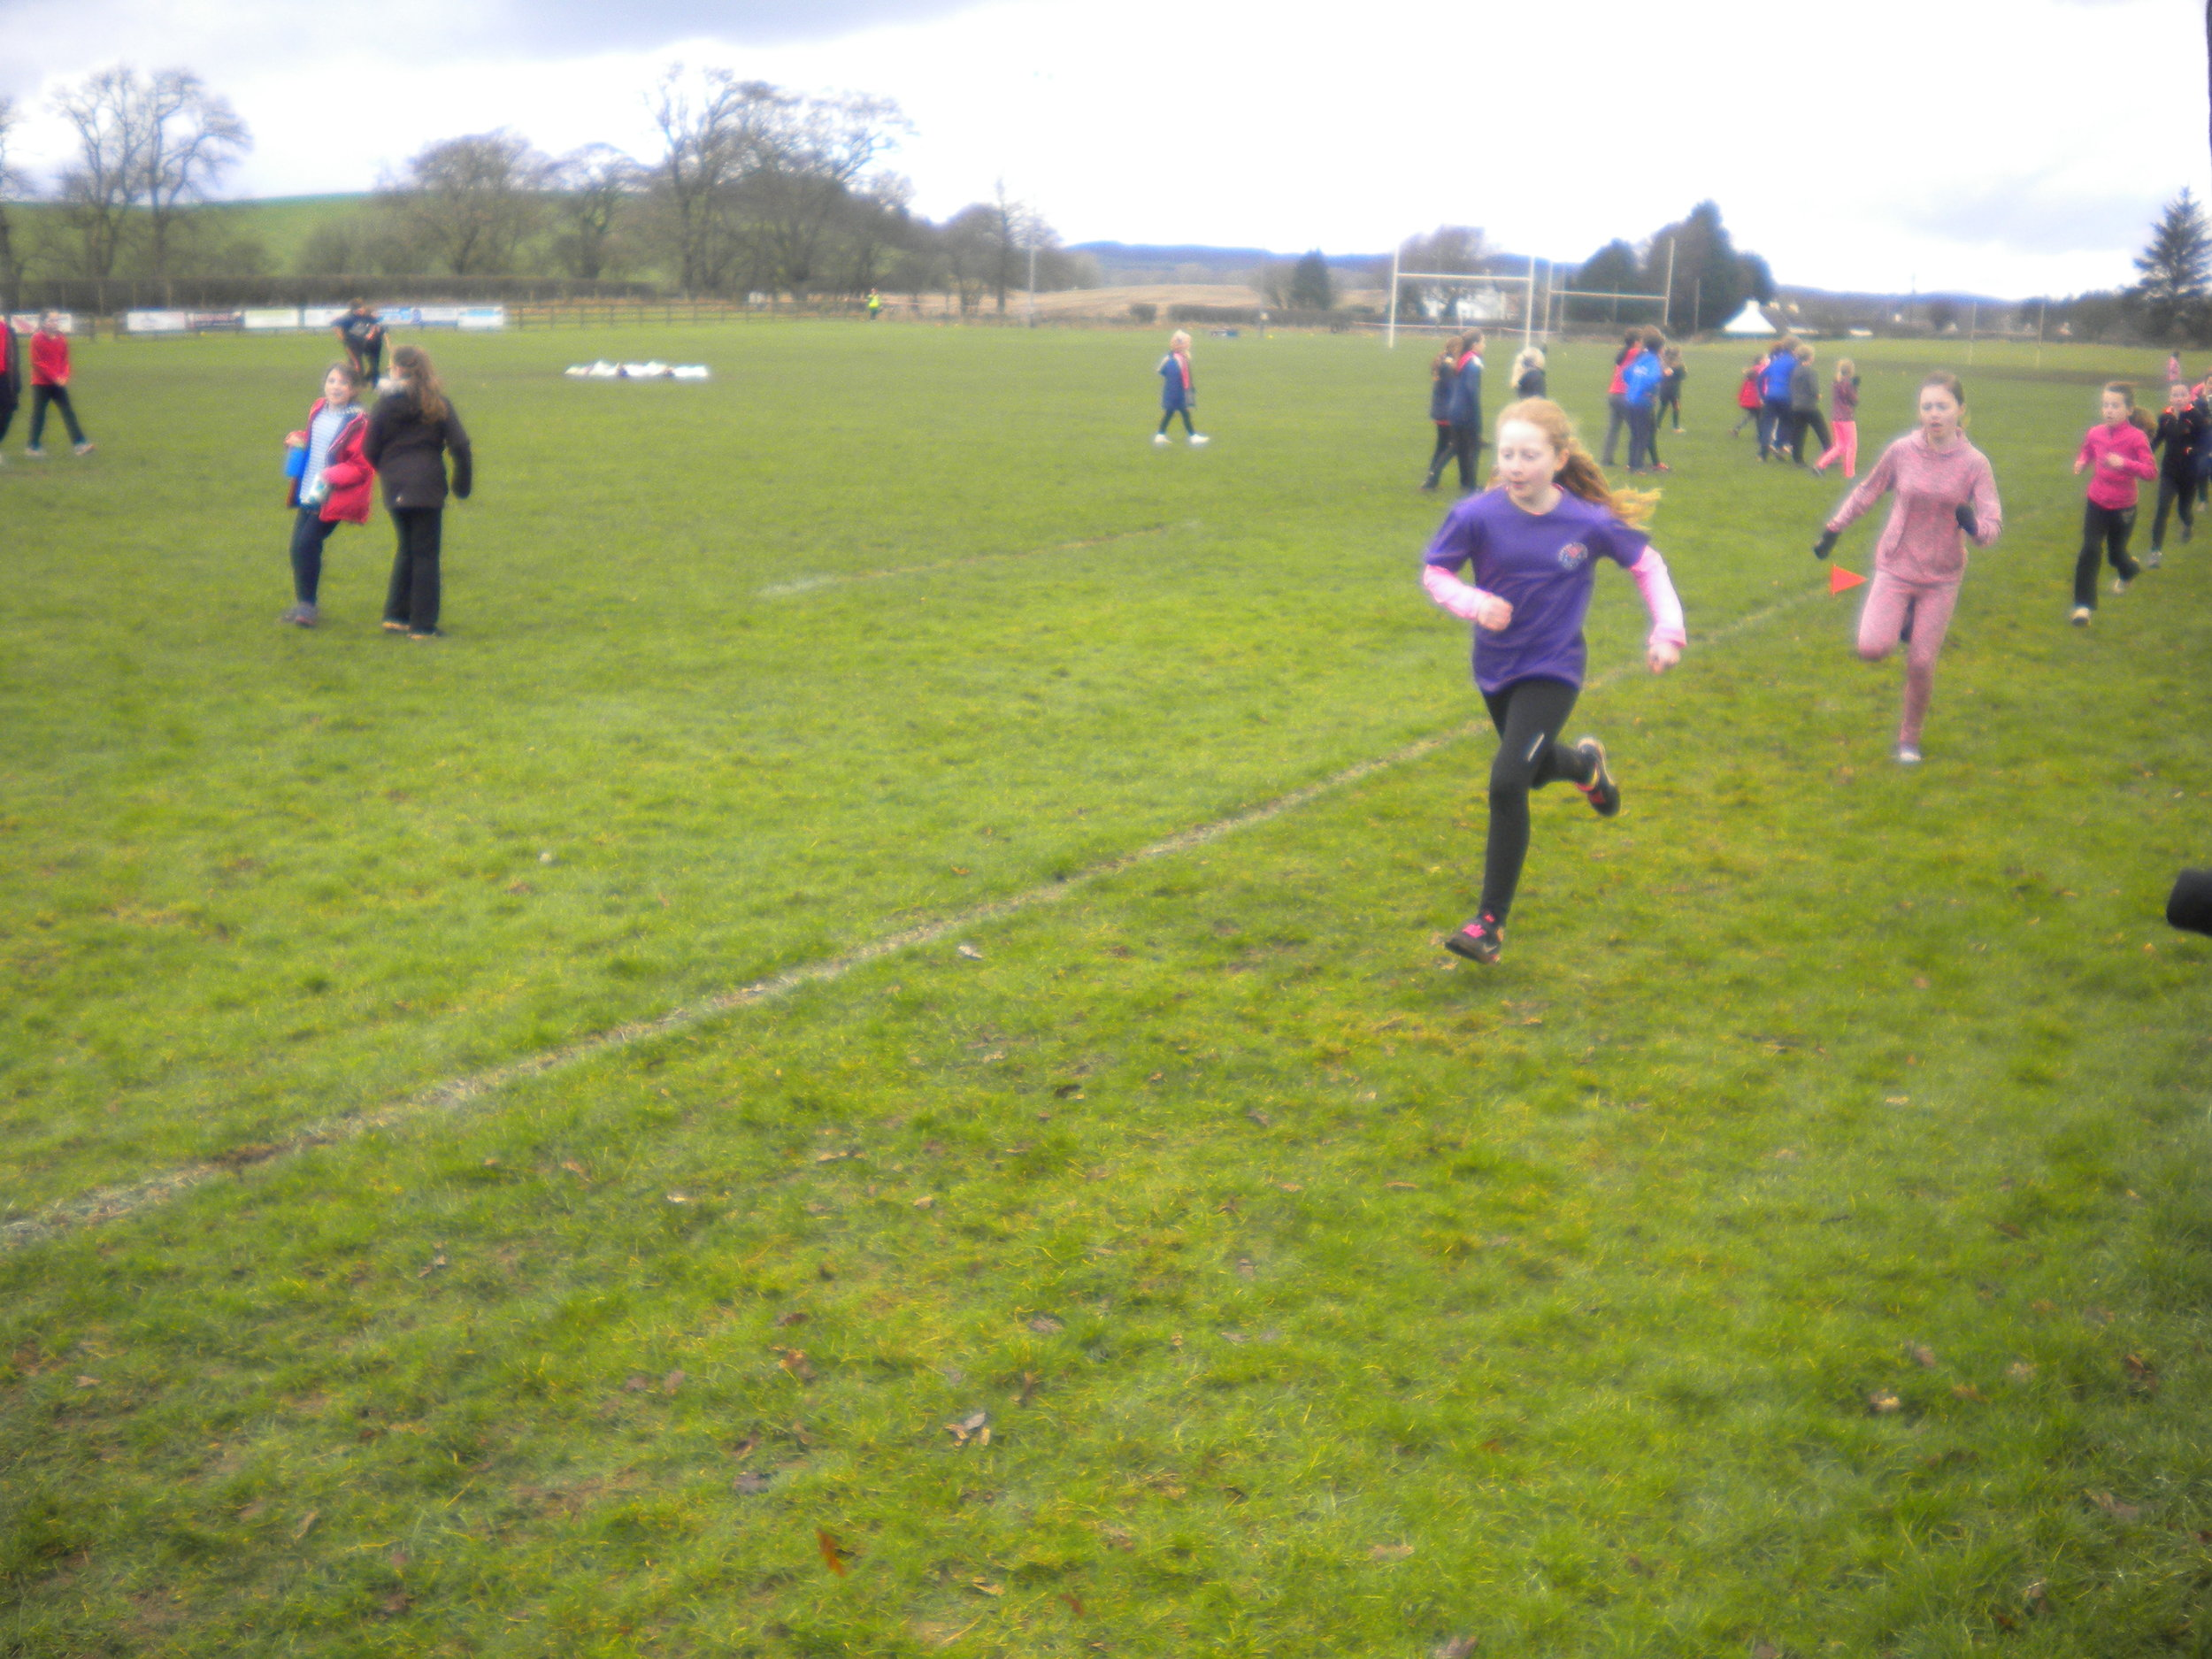 Here is K running up the home straight, determined that 1st place will be hers.